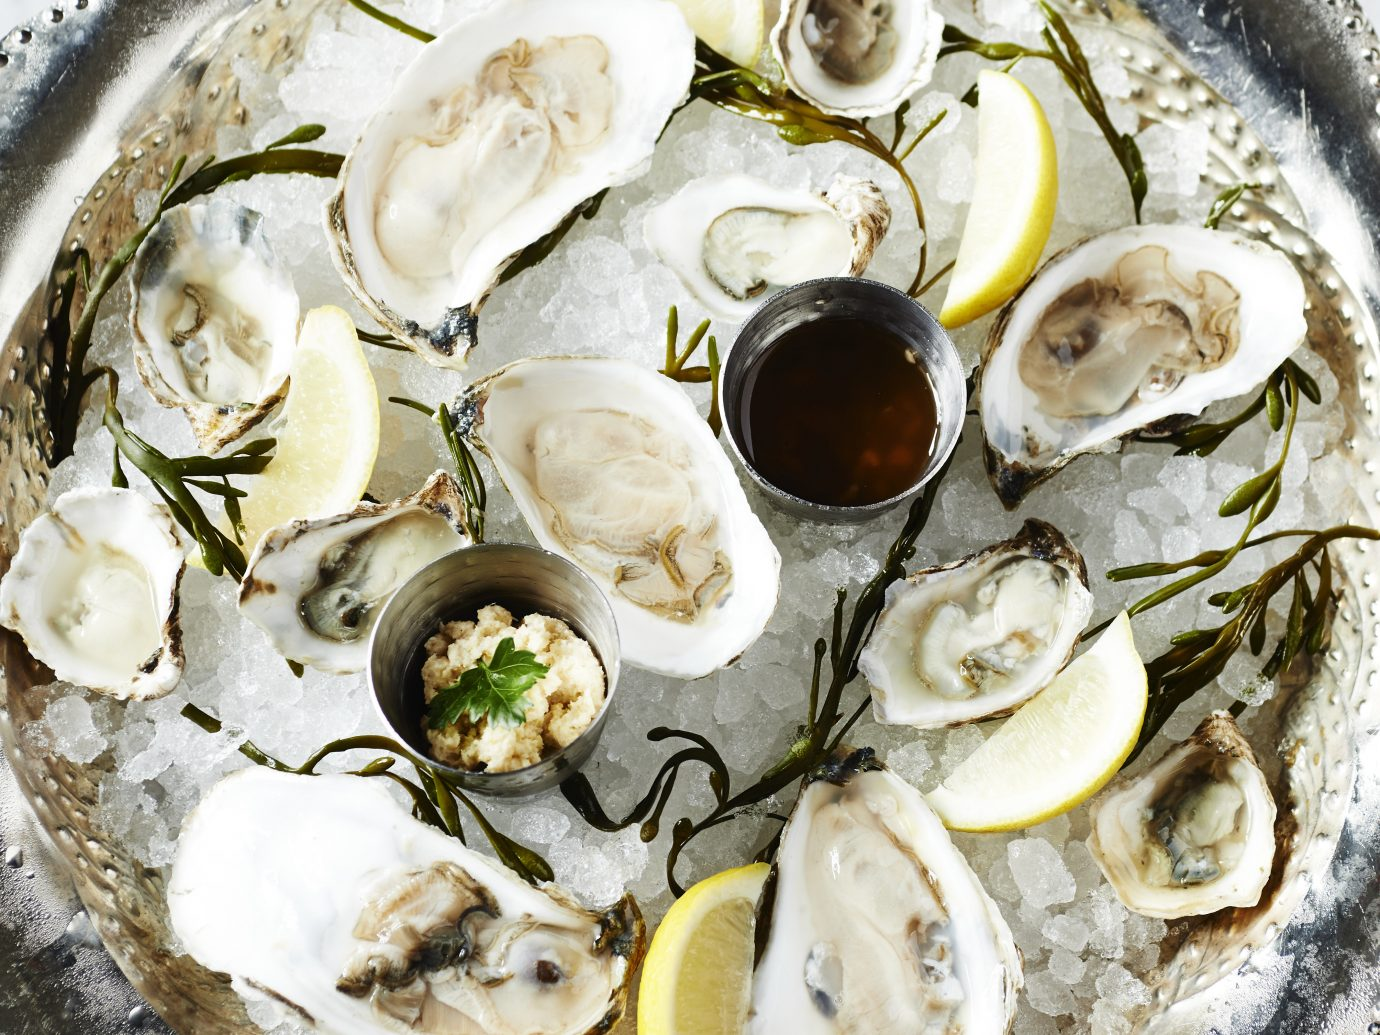 Trip Ideas food dish oyster Seafood chocolate invertebrate fish animal source foods clams oysters mussels and scallops cuisine clam molluscs cockle mussel dessert several